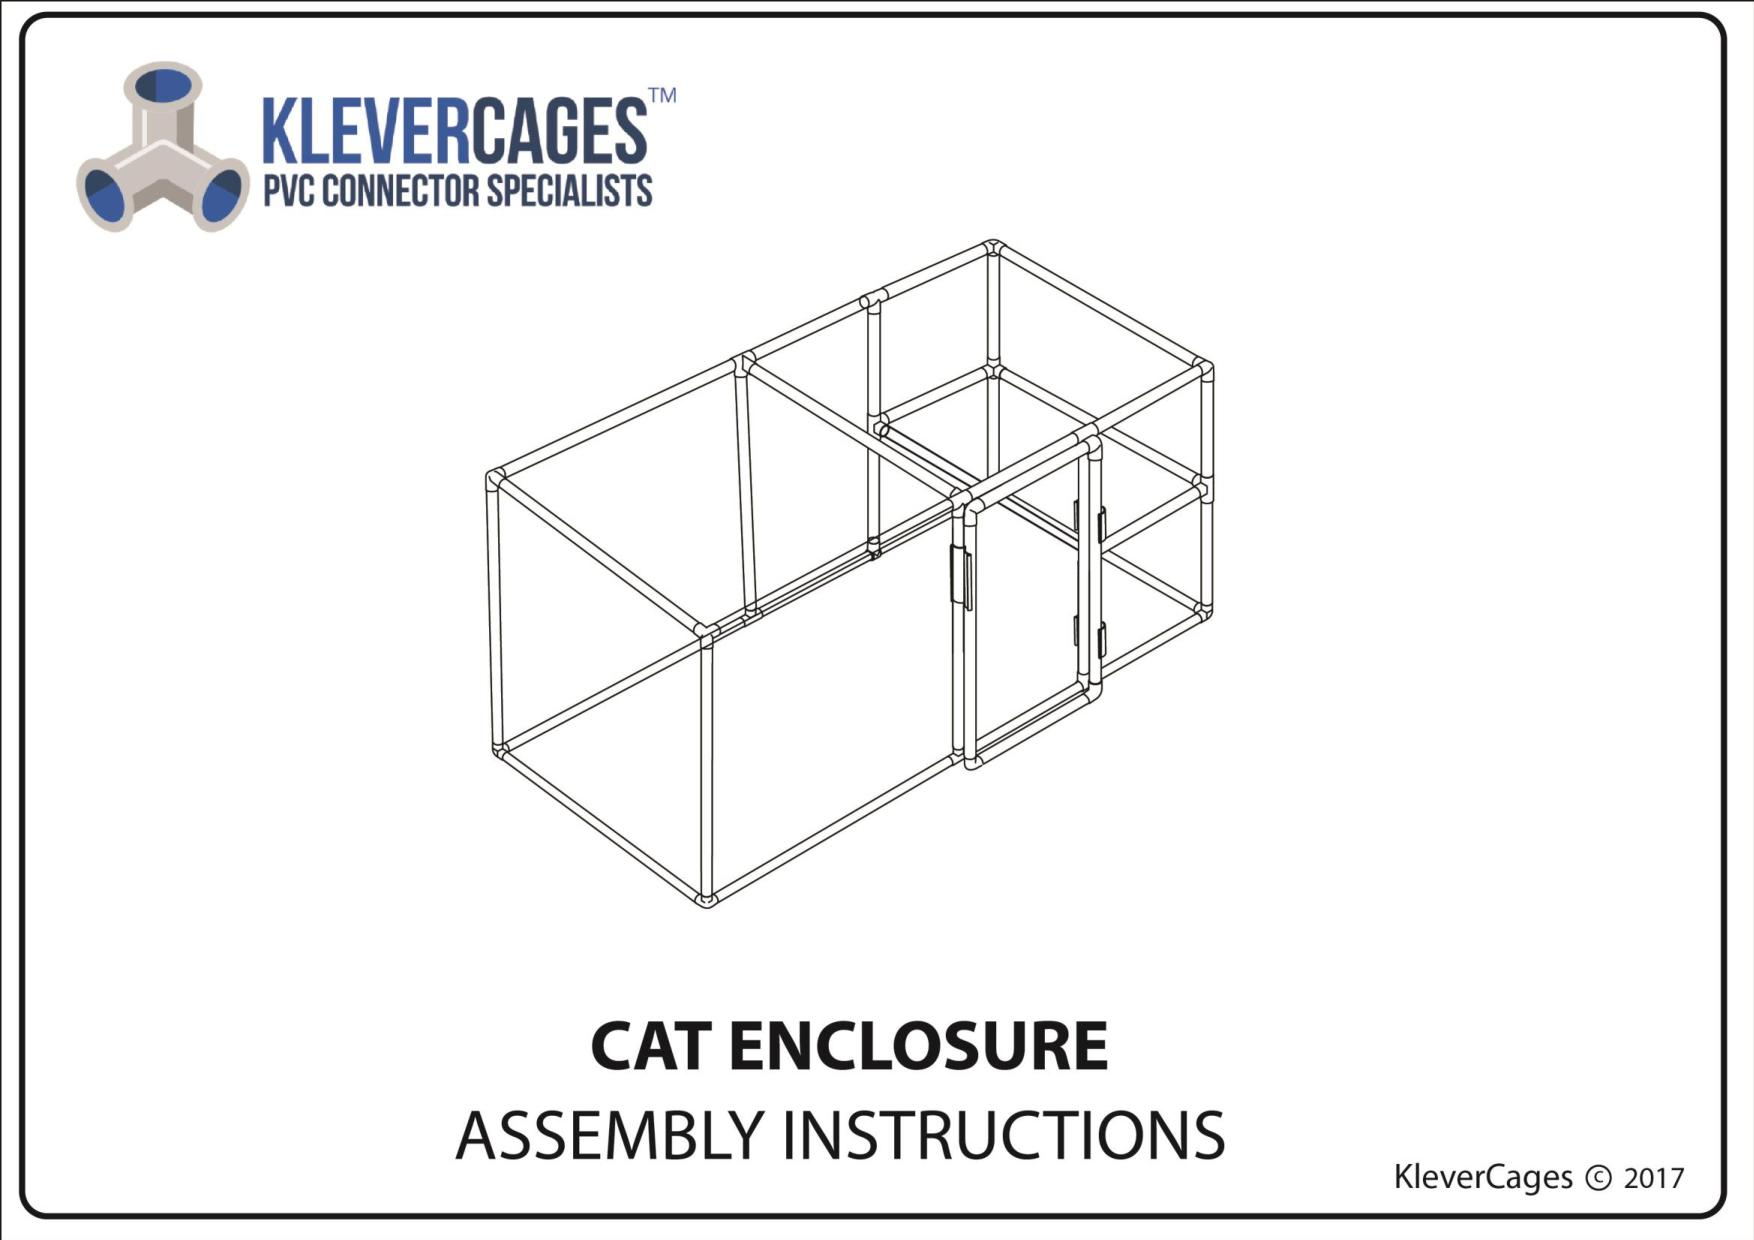 Free cat enclosure plans for download. Catio is made of PVC pipe and connectors from Klever Cages